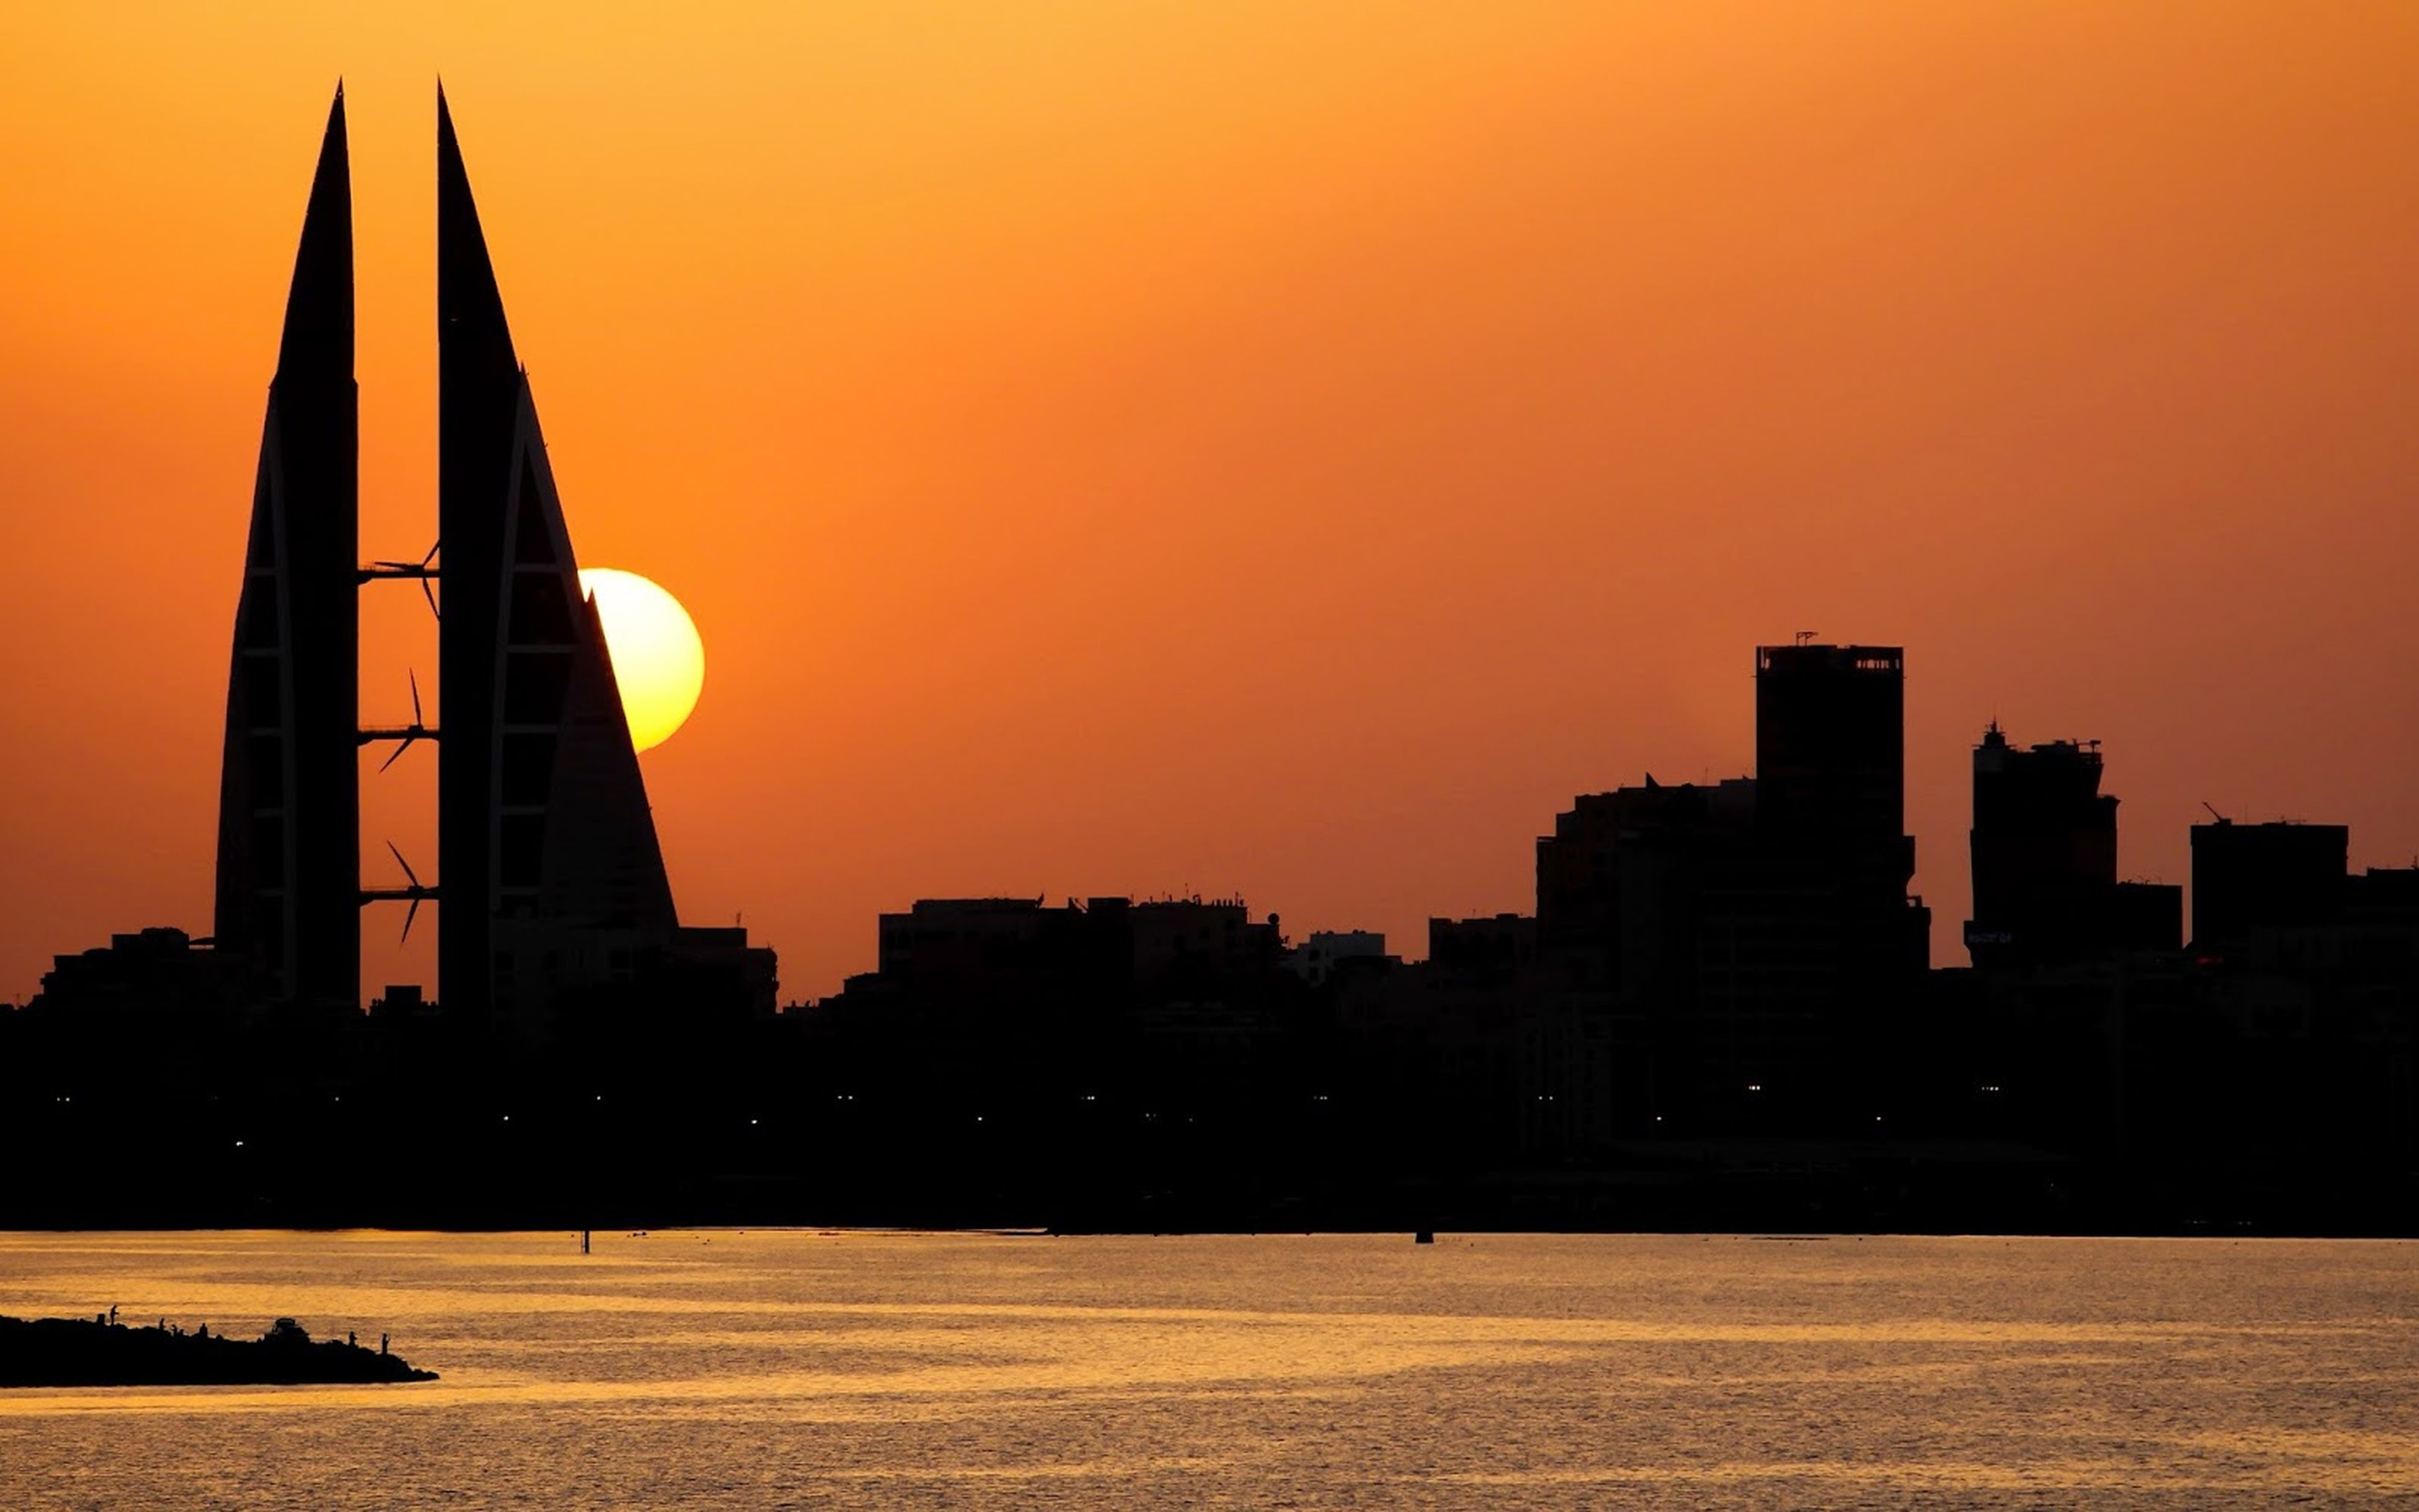 sunset, architecture, built structure, building exterior, orange color, silhouette, clear sky, city, water, copy space, waterfront, river, sky, tower, urban skyline, cityscape, outdoors, skyscraper, sea, dusk